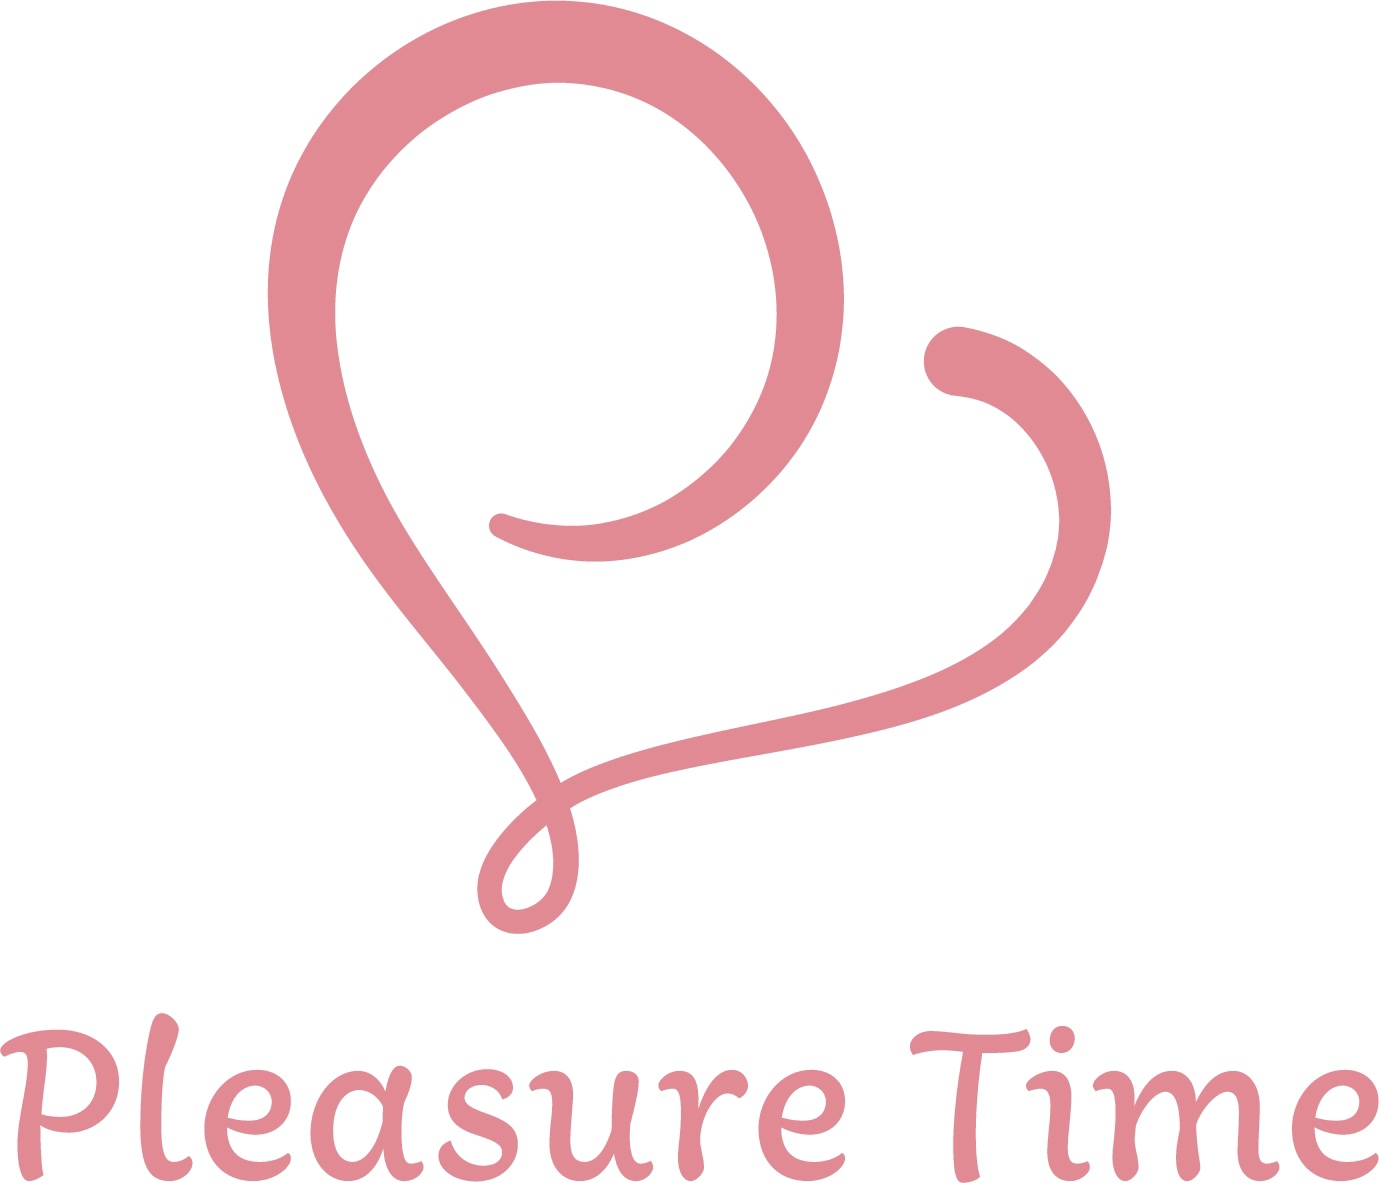 Pleasure Time